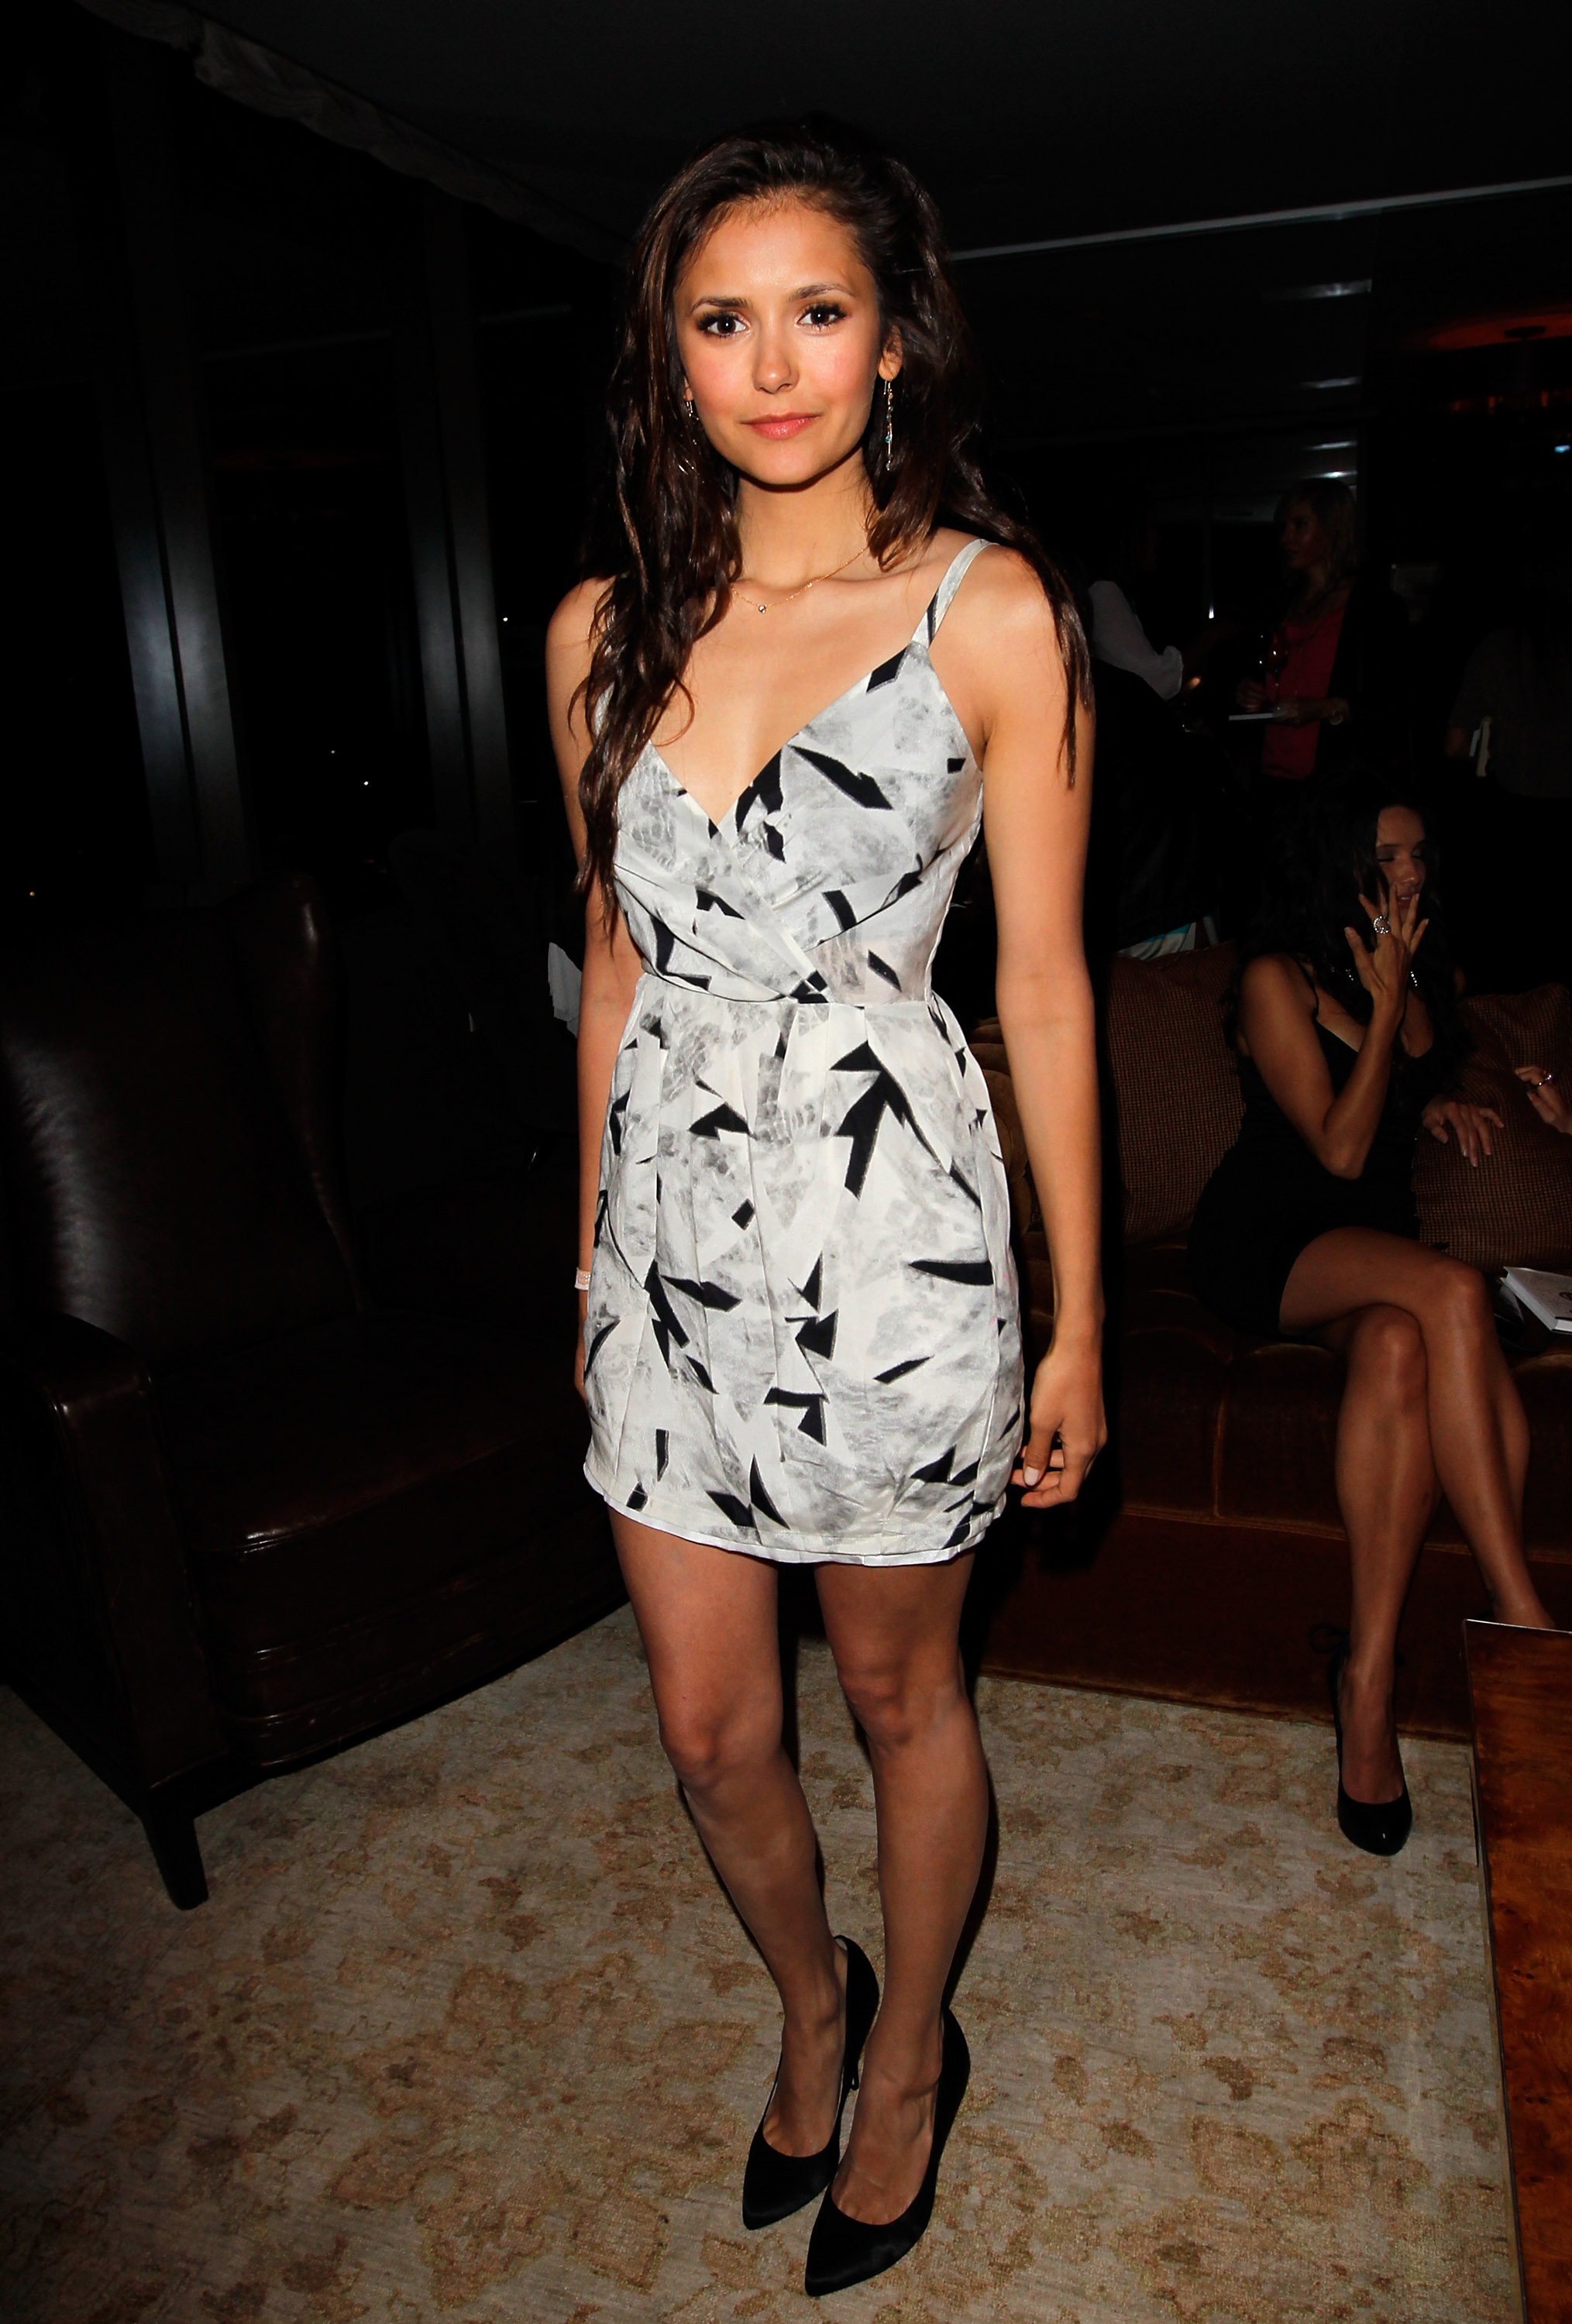 She wore a graphic-printed minidress and black pointy-toe pumps for a Glamour party in April 2012.